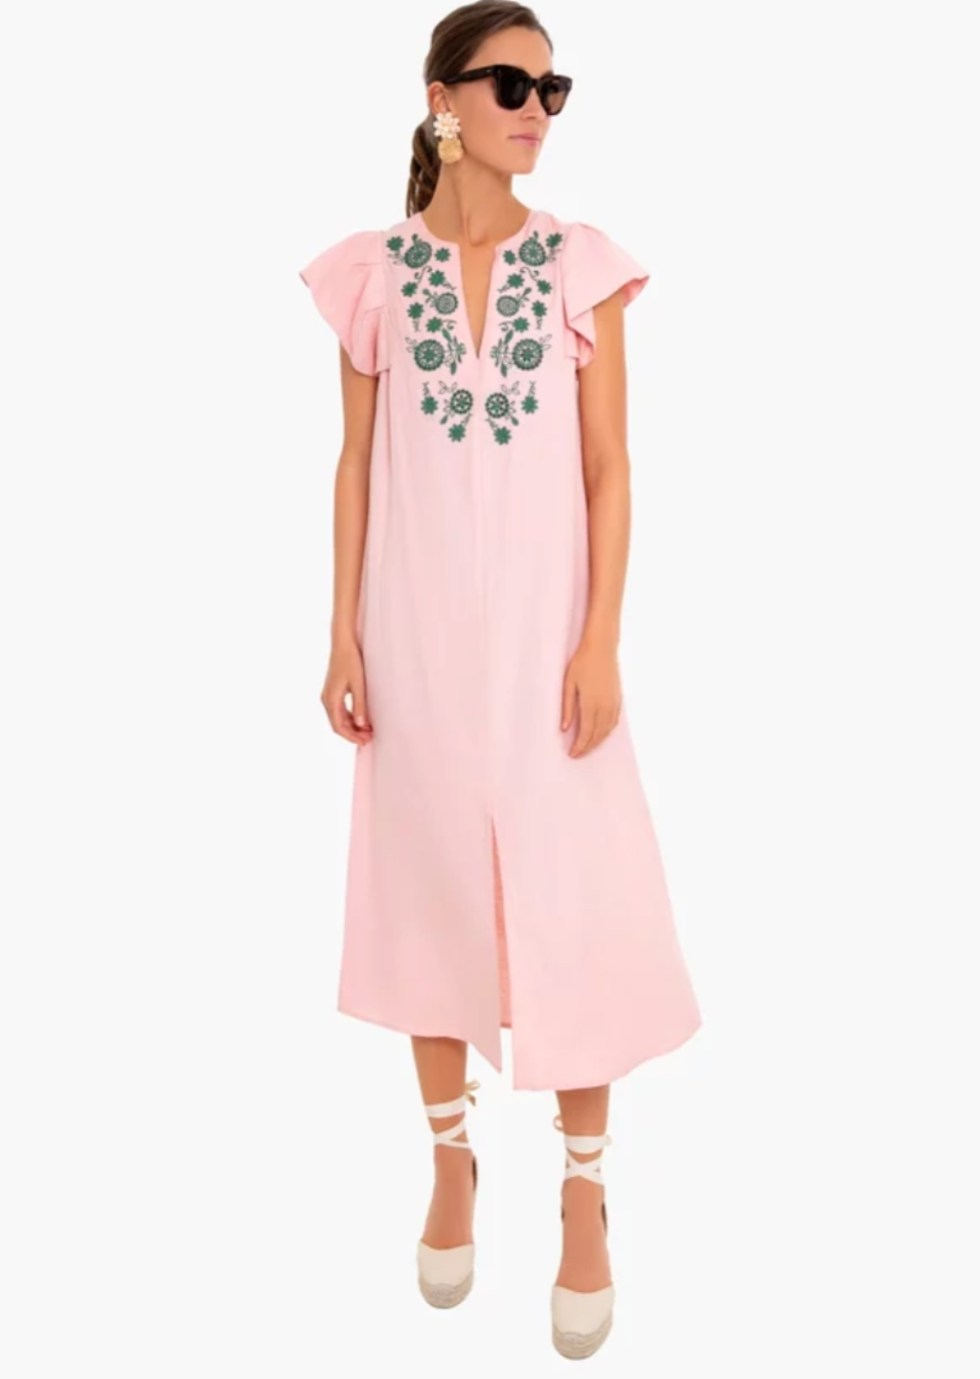 What I'm Eyeing for Early Spring - I'm Fixin' To - @imfixintoblog |Early Spring Fashion by popular NC fashion blog, I'm Fixin' To: image of a Tuckernuck Whispering Peach Emma Embroidered Caftan.